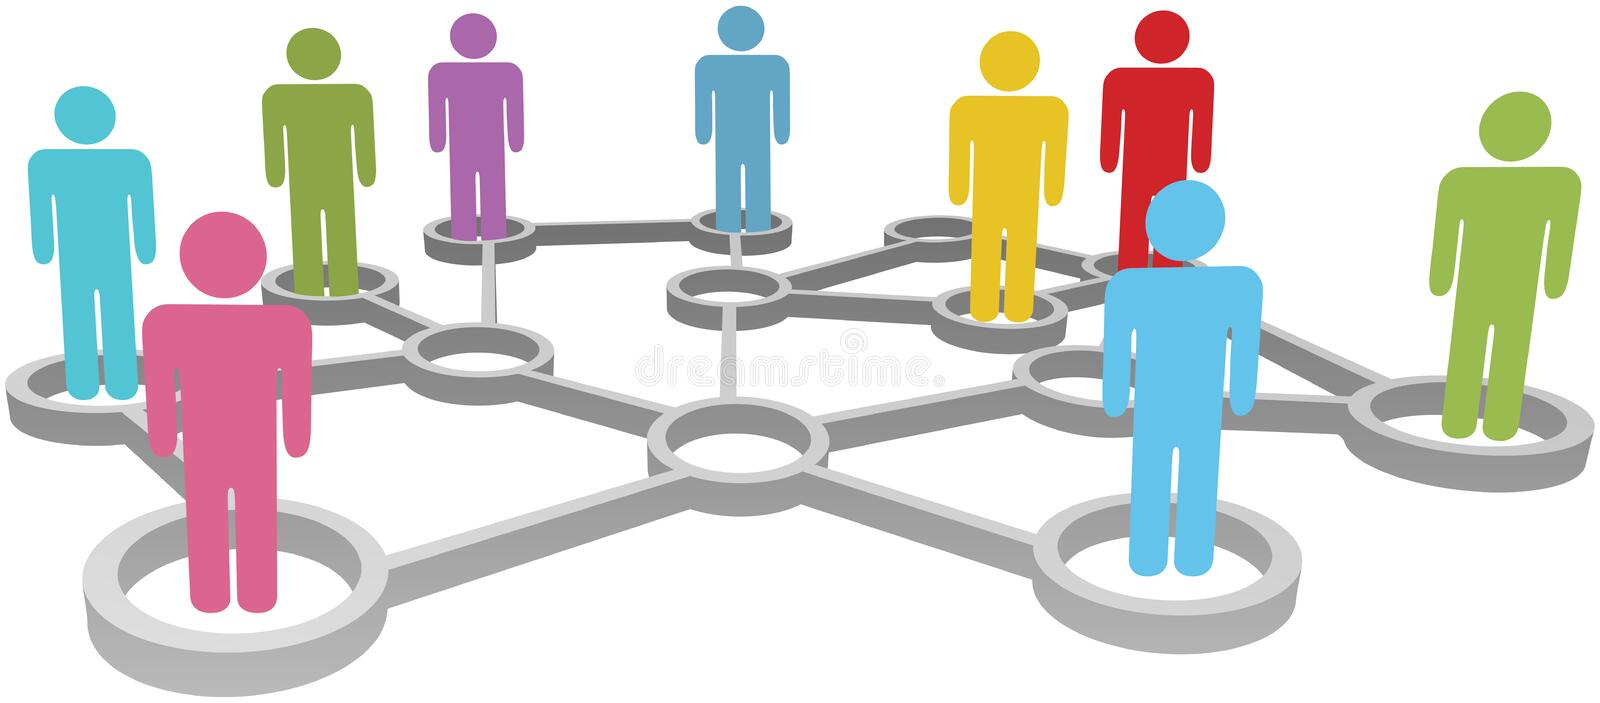 Connect diverse people business or social network royalty free illustration